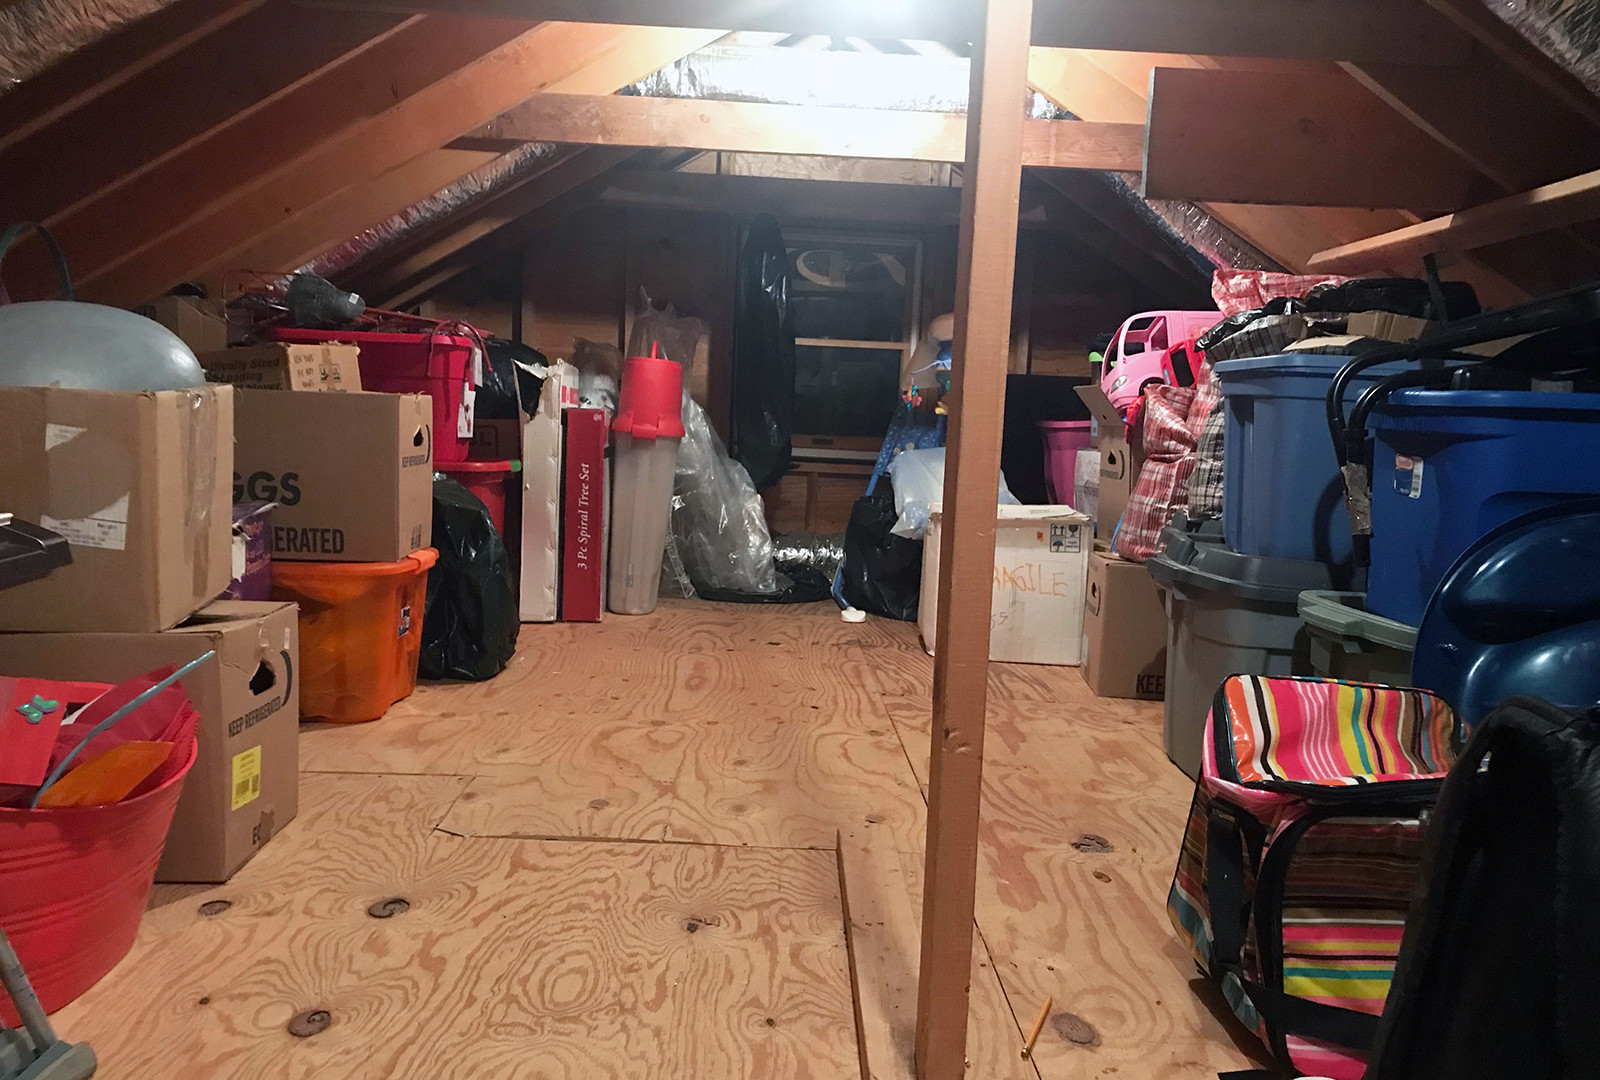 Attic - After